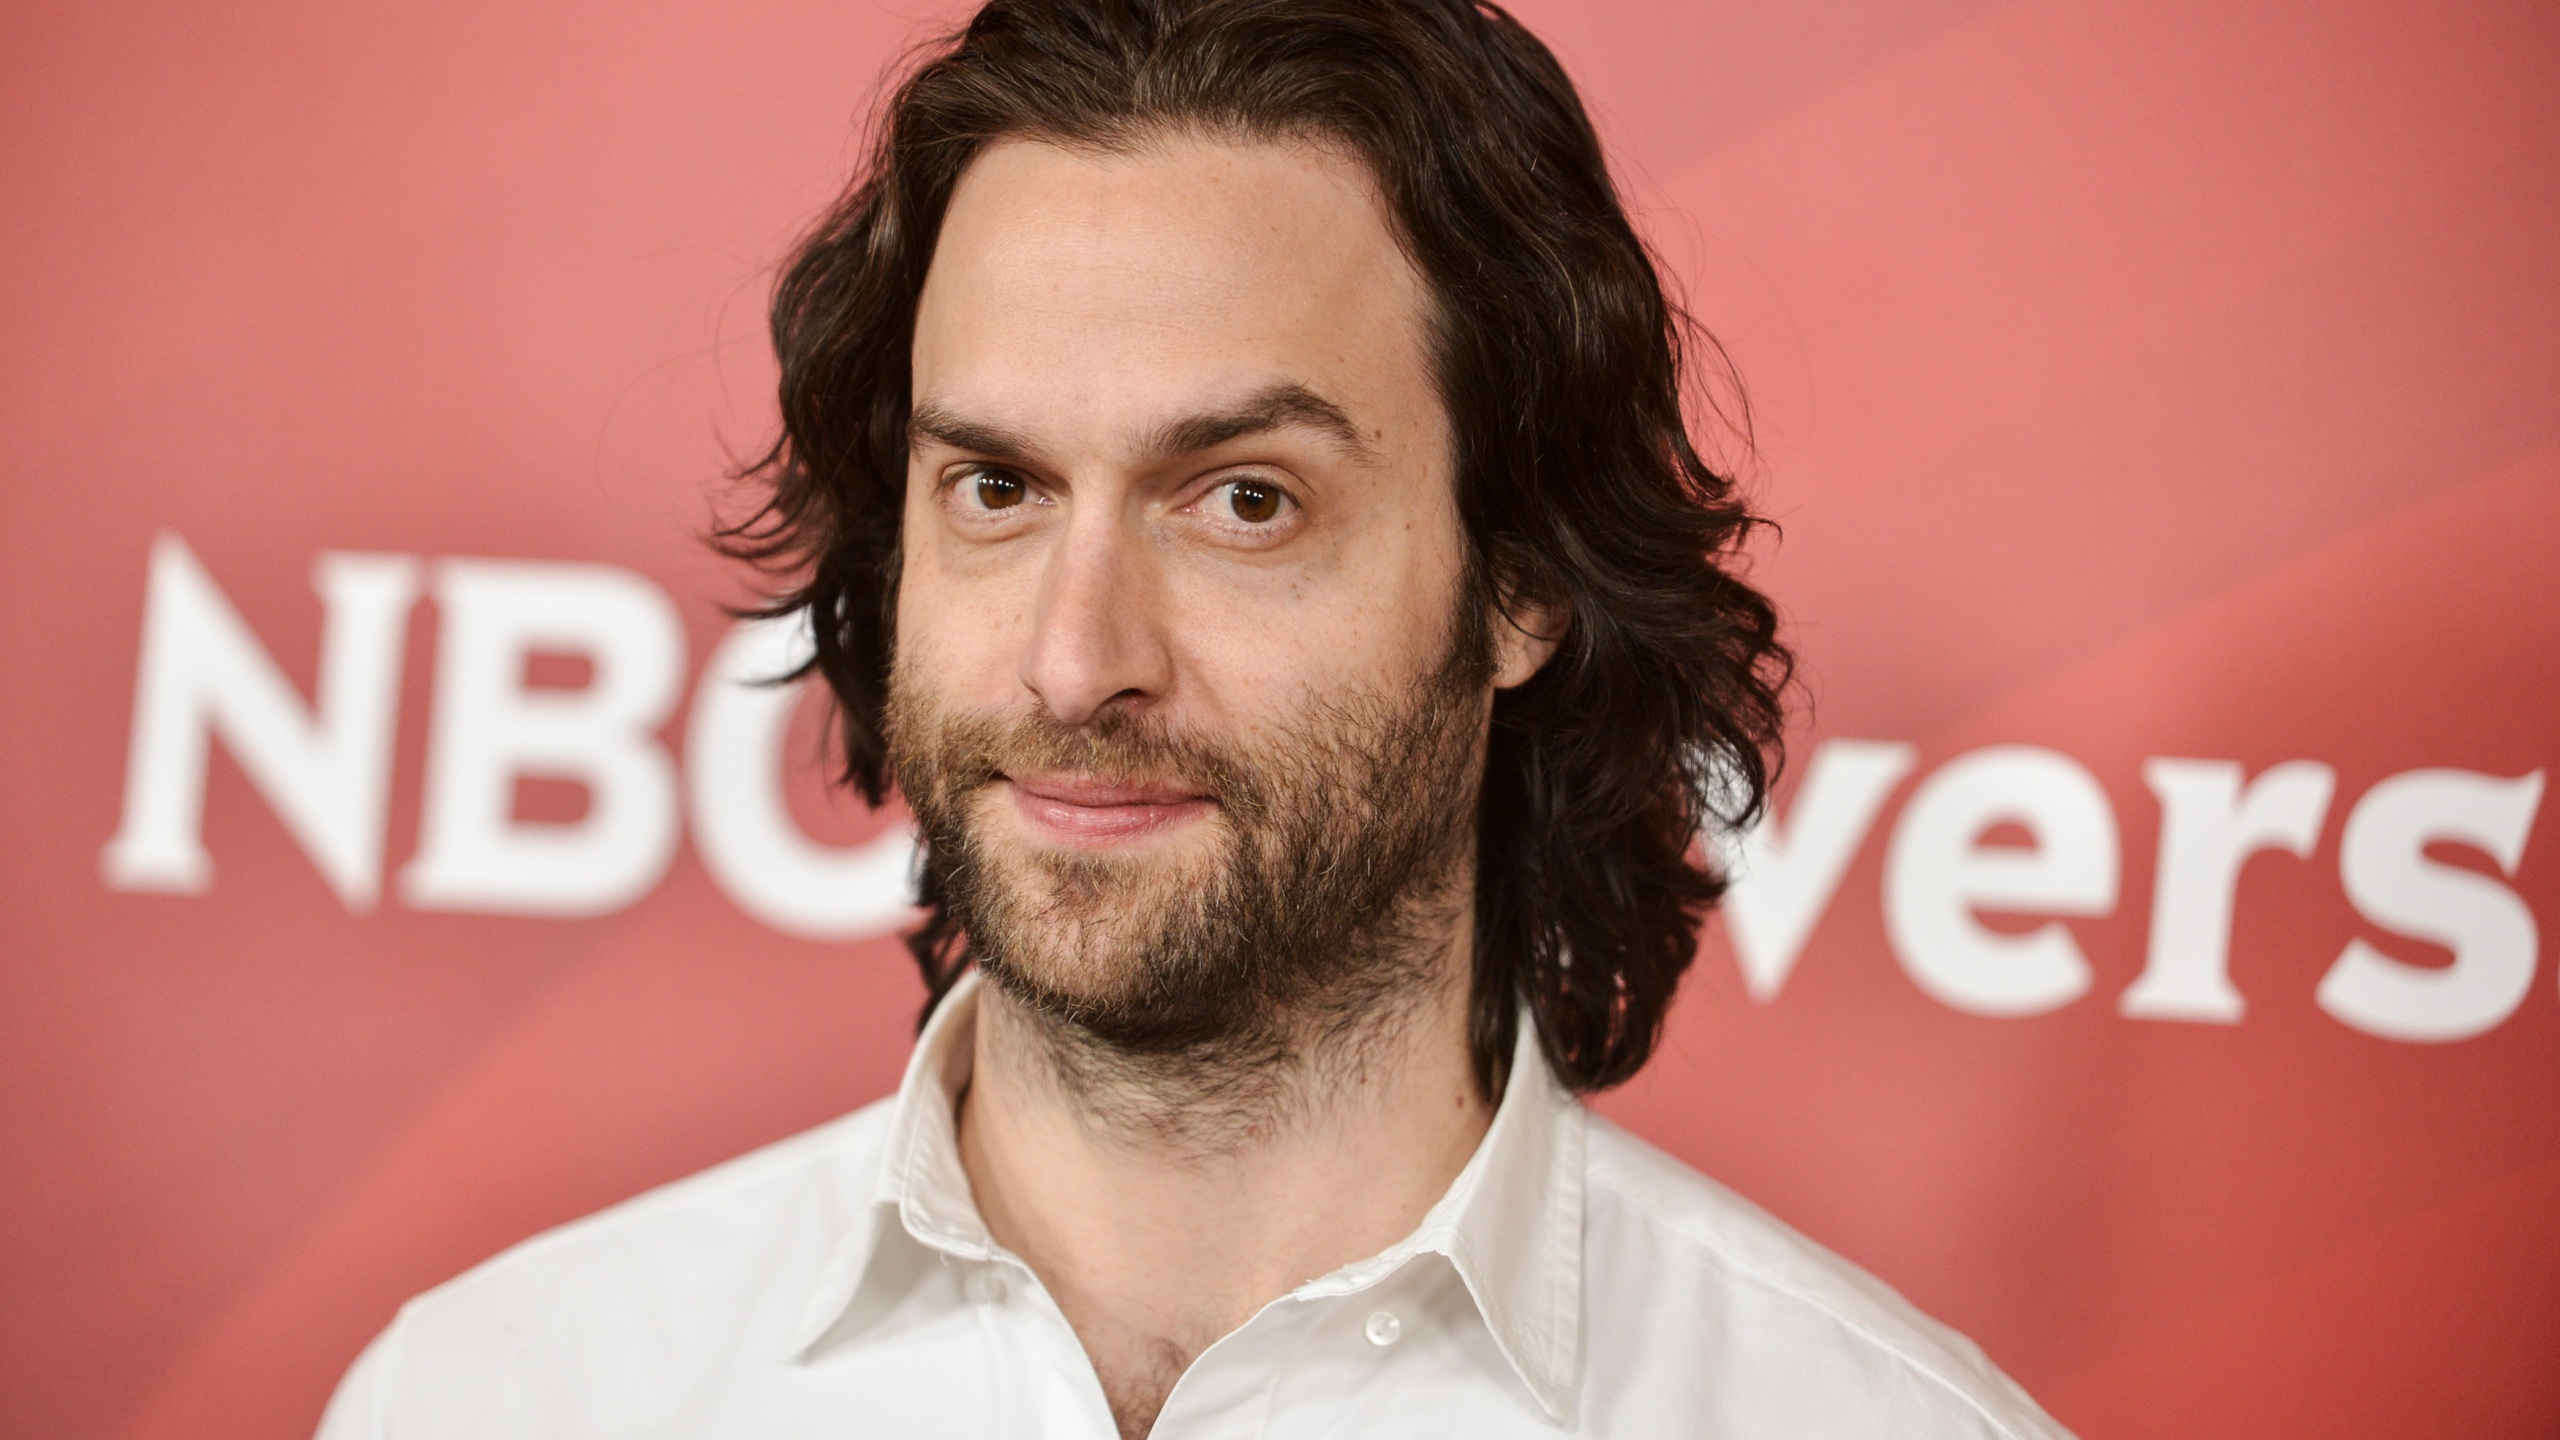 Chris D'Elia arrives at the NBC Universal Summer Press Day in Pasadena on April 8, 2014. (Richard Shotwell / Invision / Associated Press)